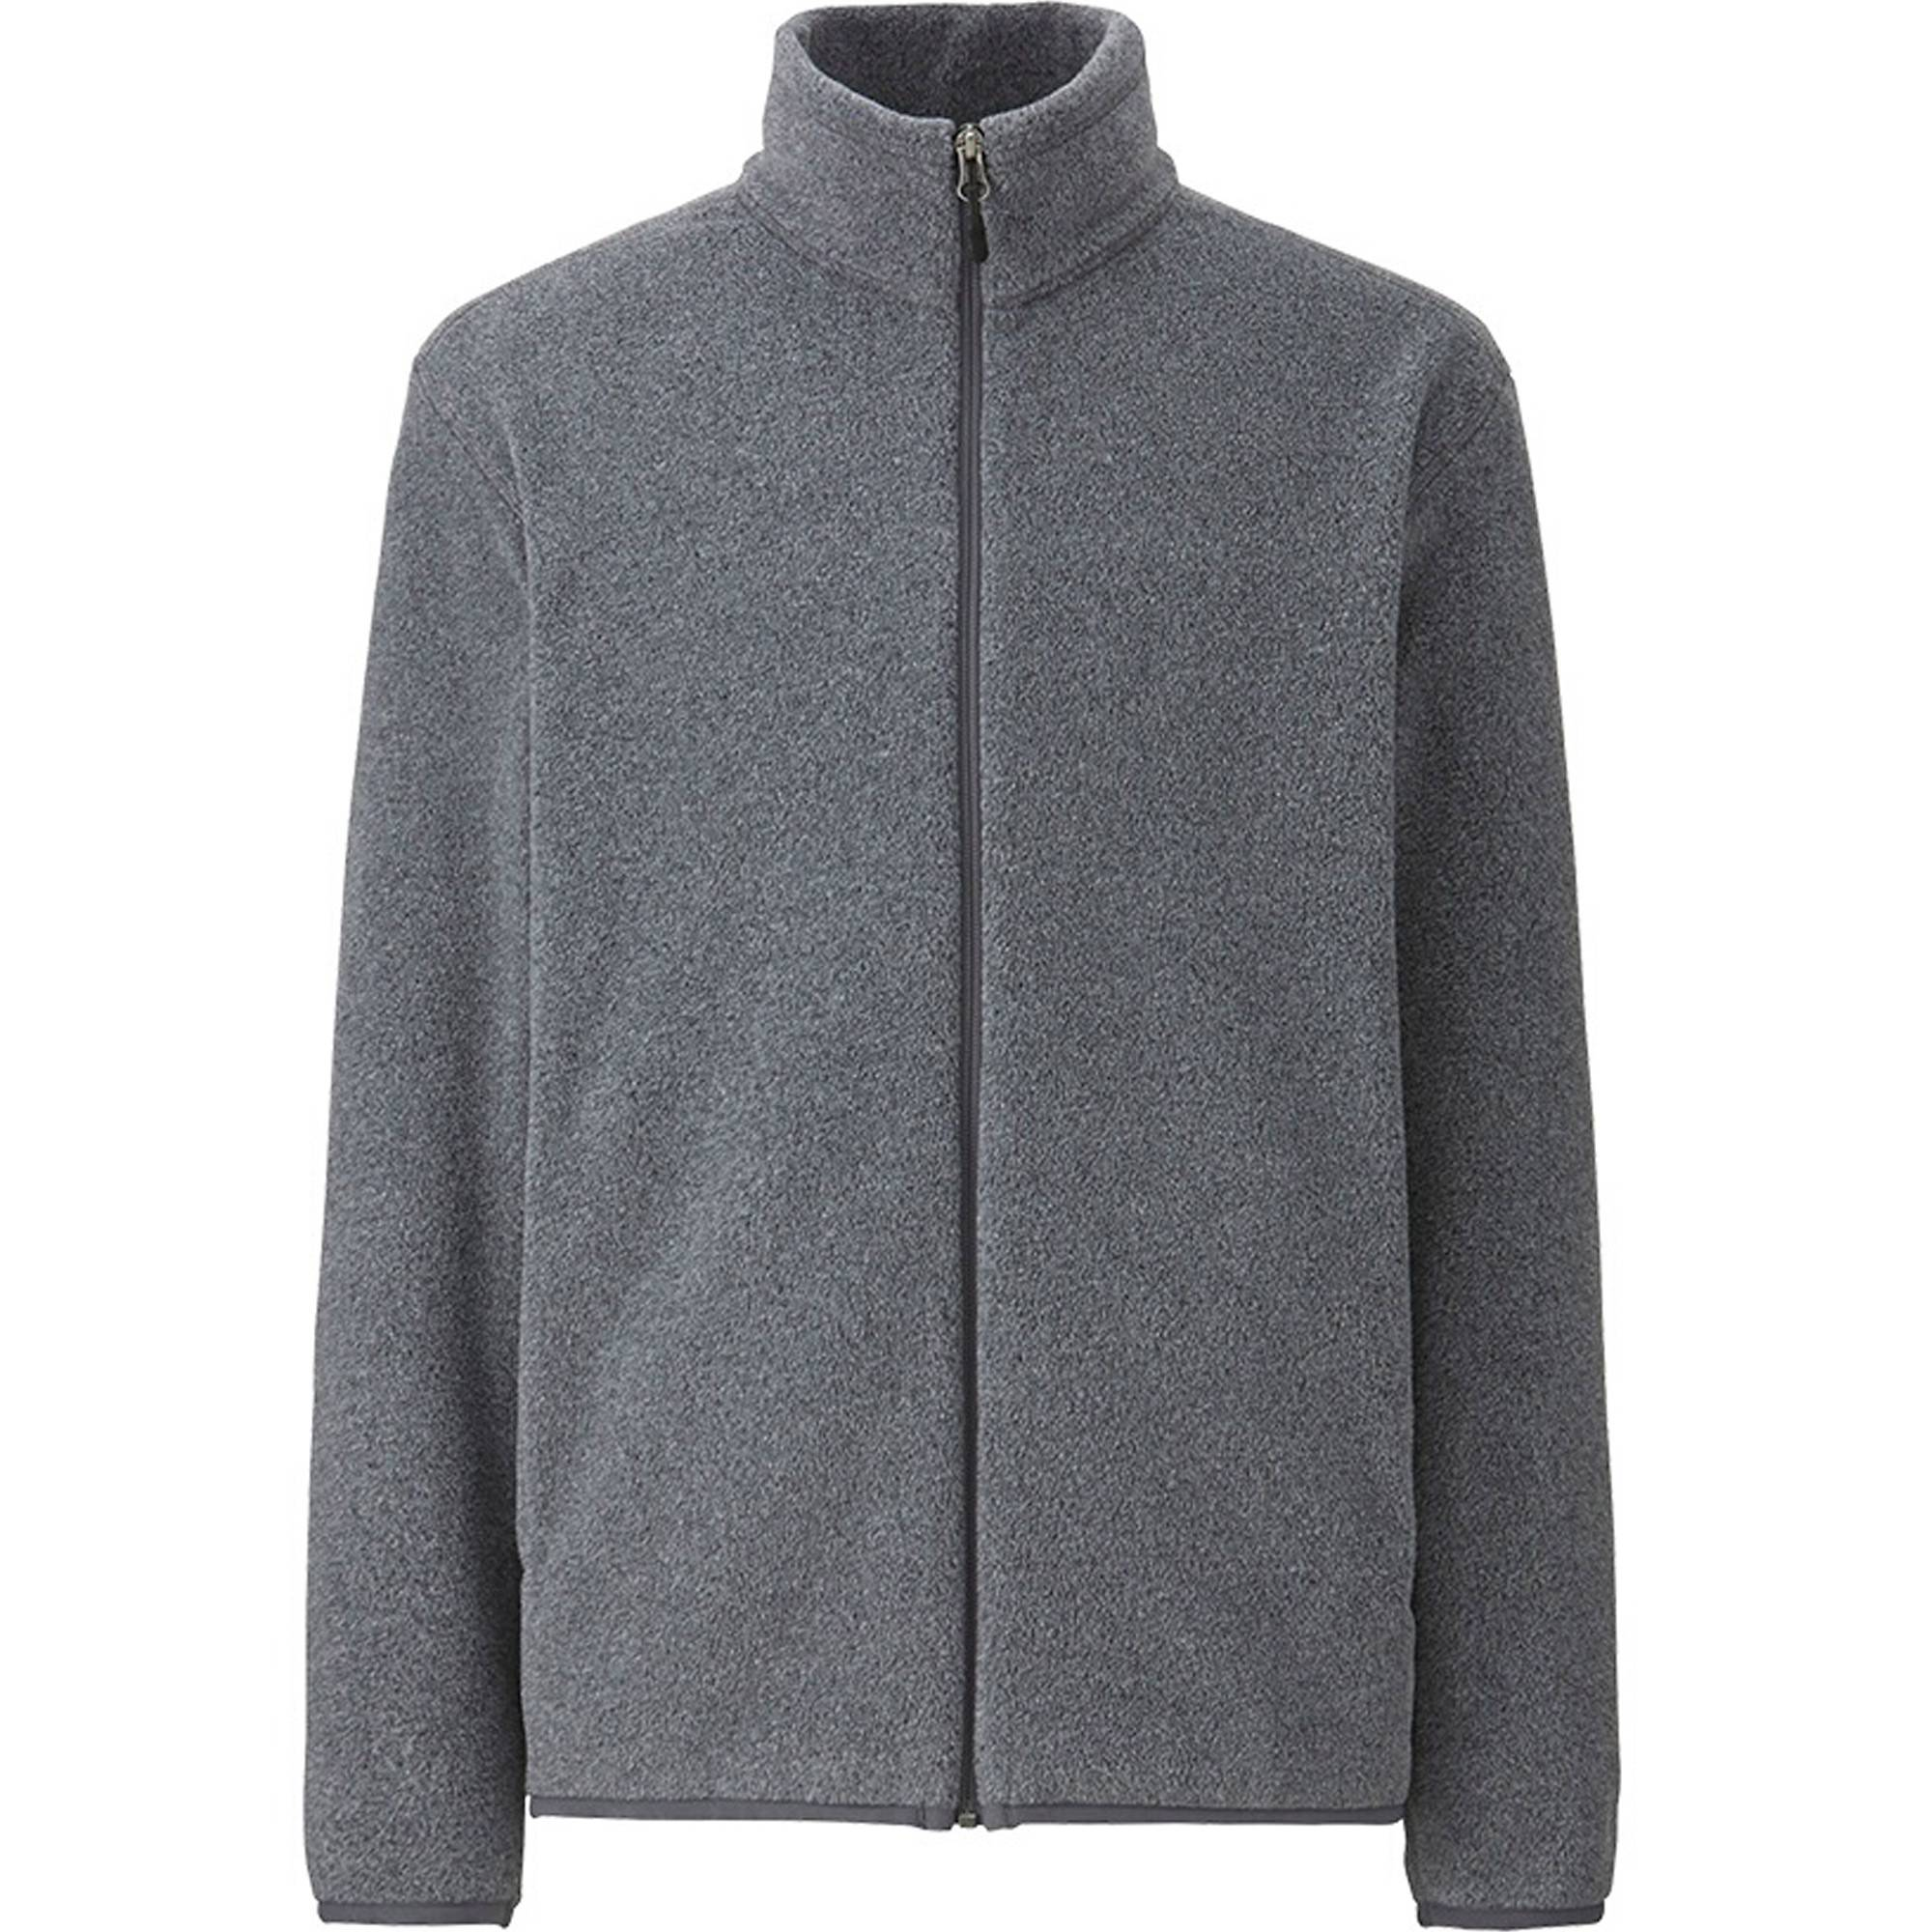 MEN FLEECE LONG SLEEVE FULL-ZIP JACKET | UNIQLO US